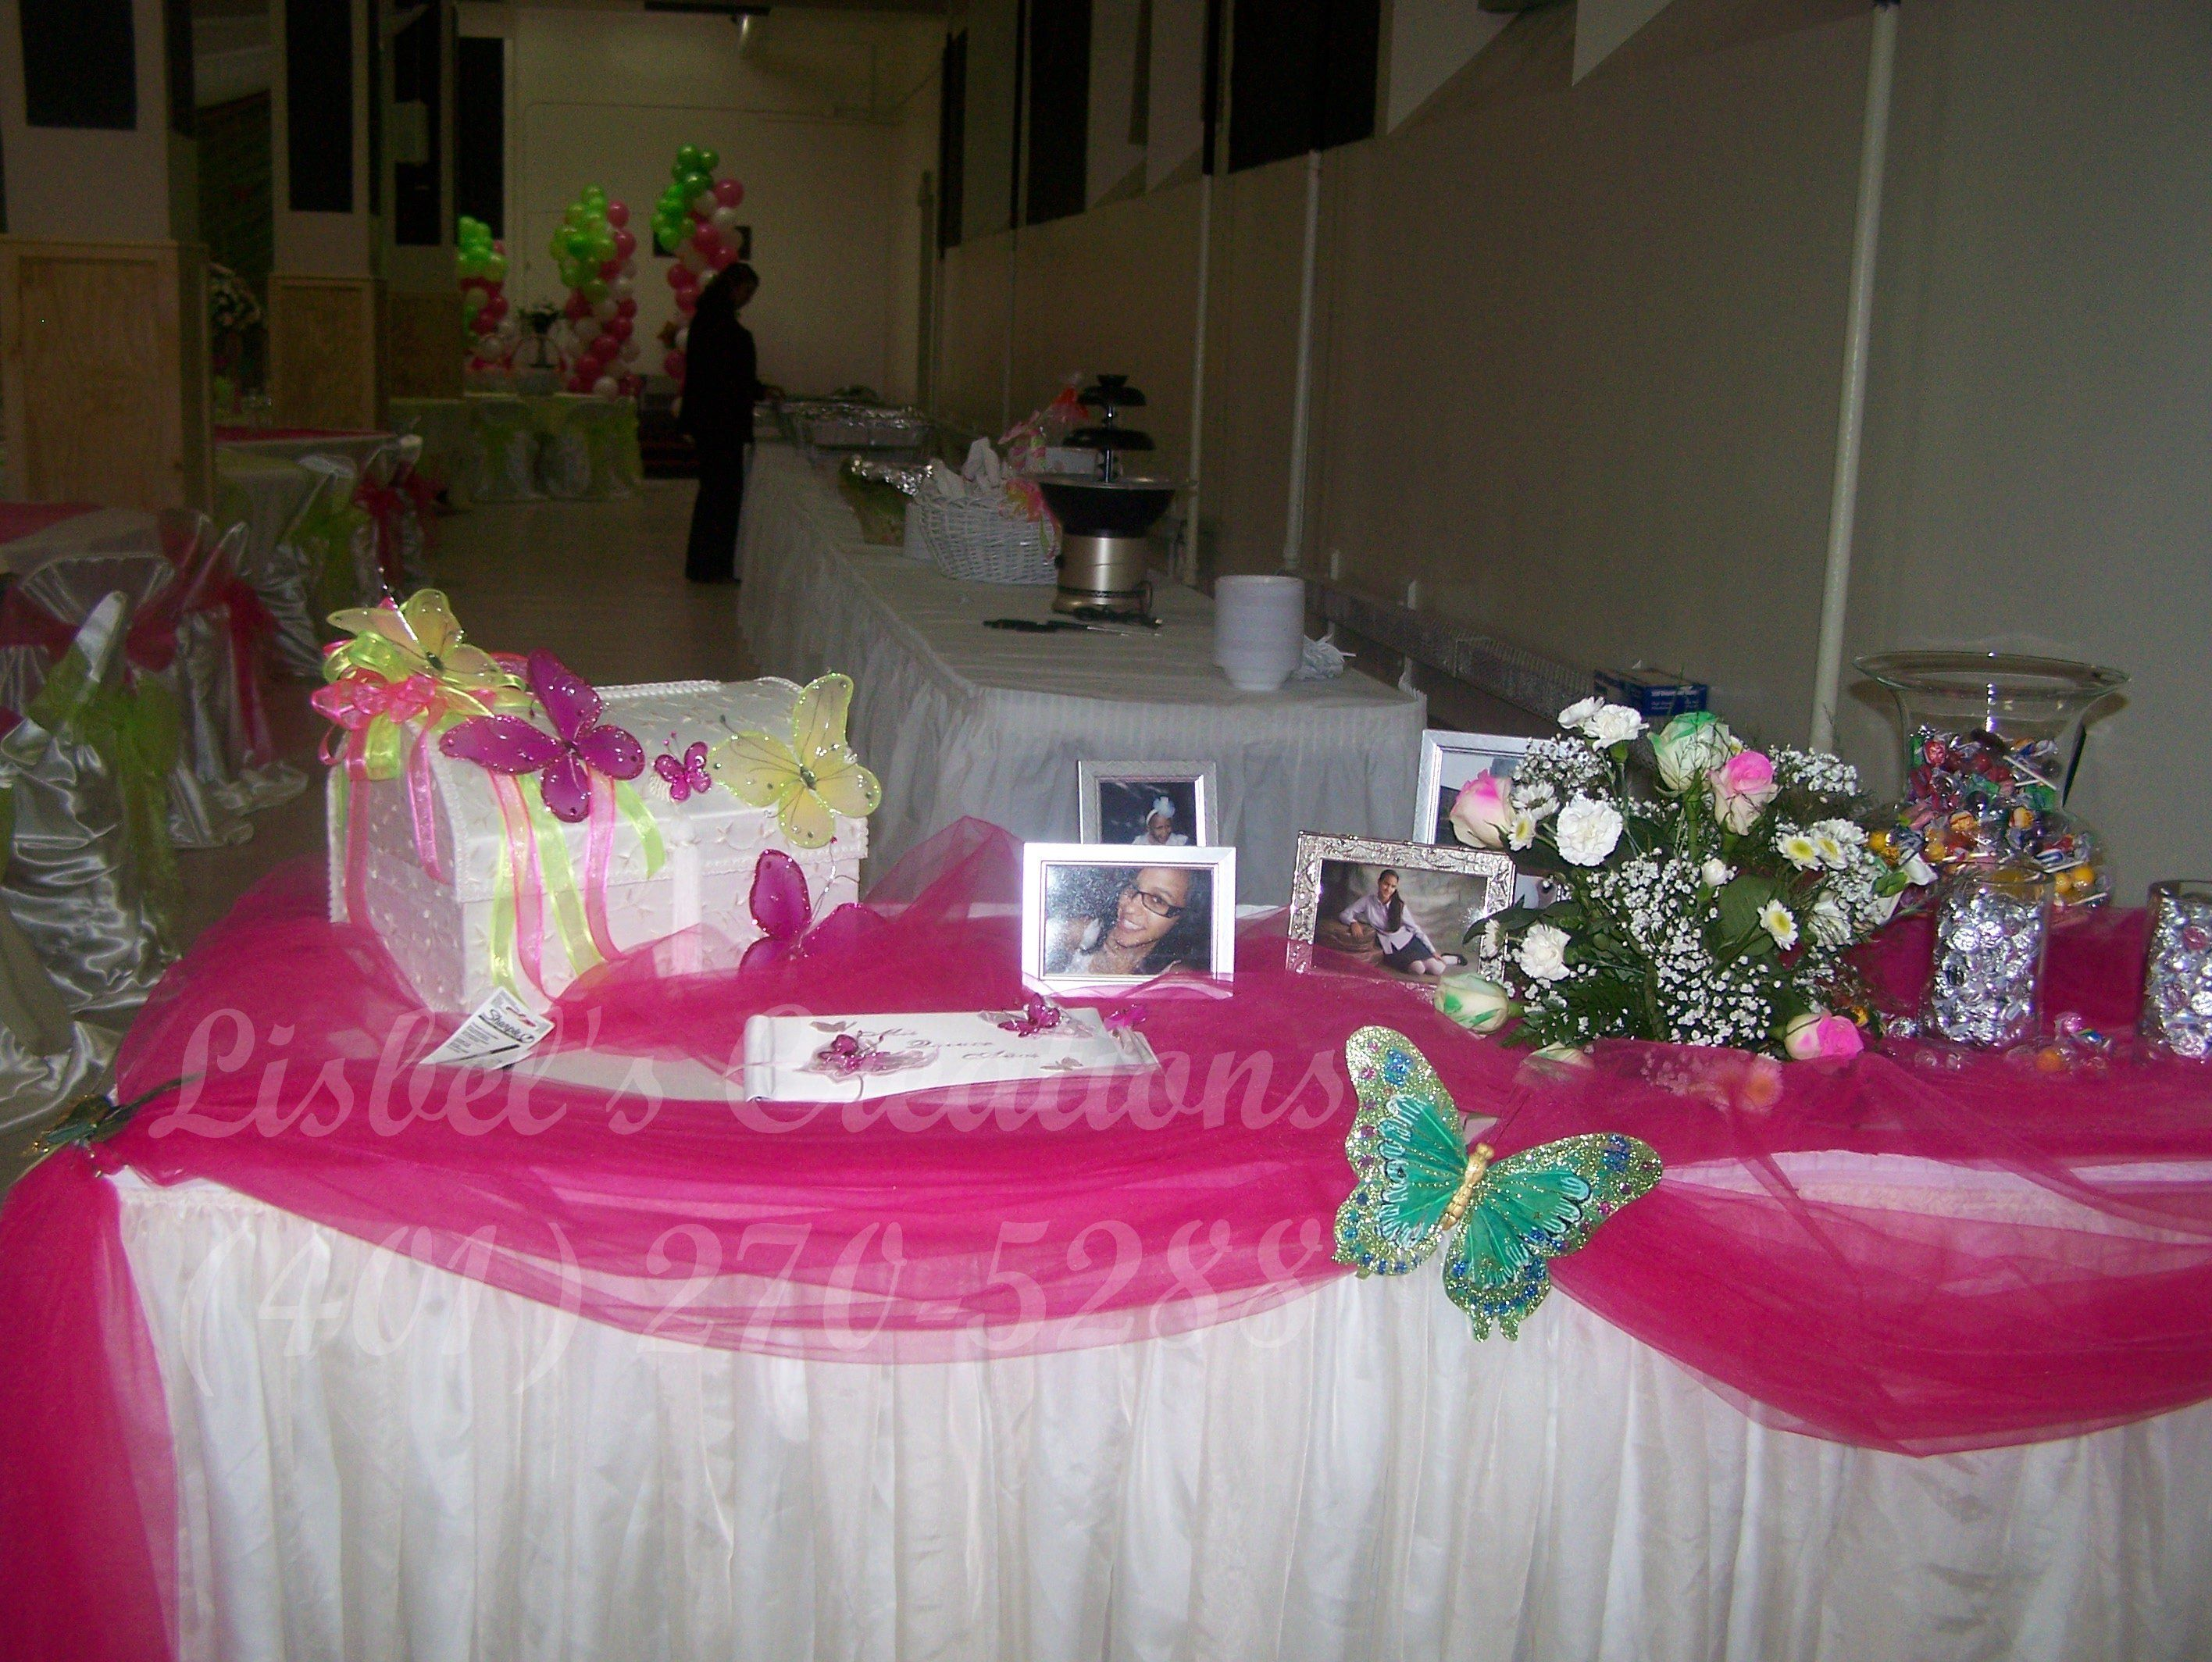 Silla de quinceanera decoracion de quinceanera for Adornos para quinceanera